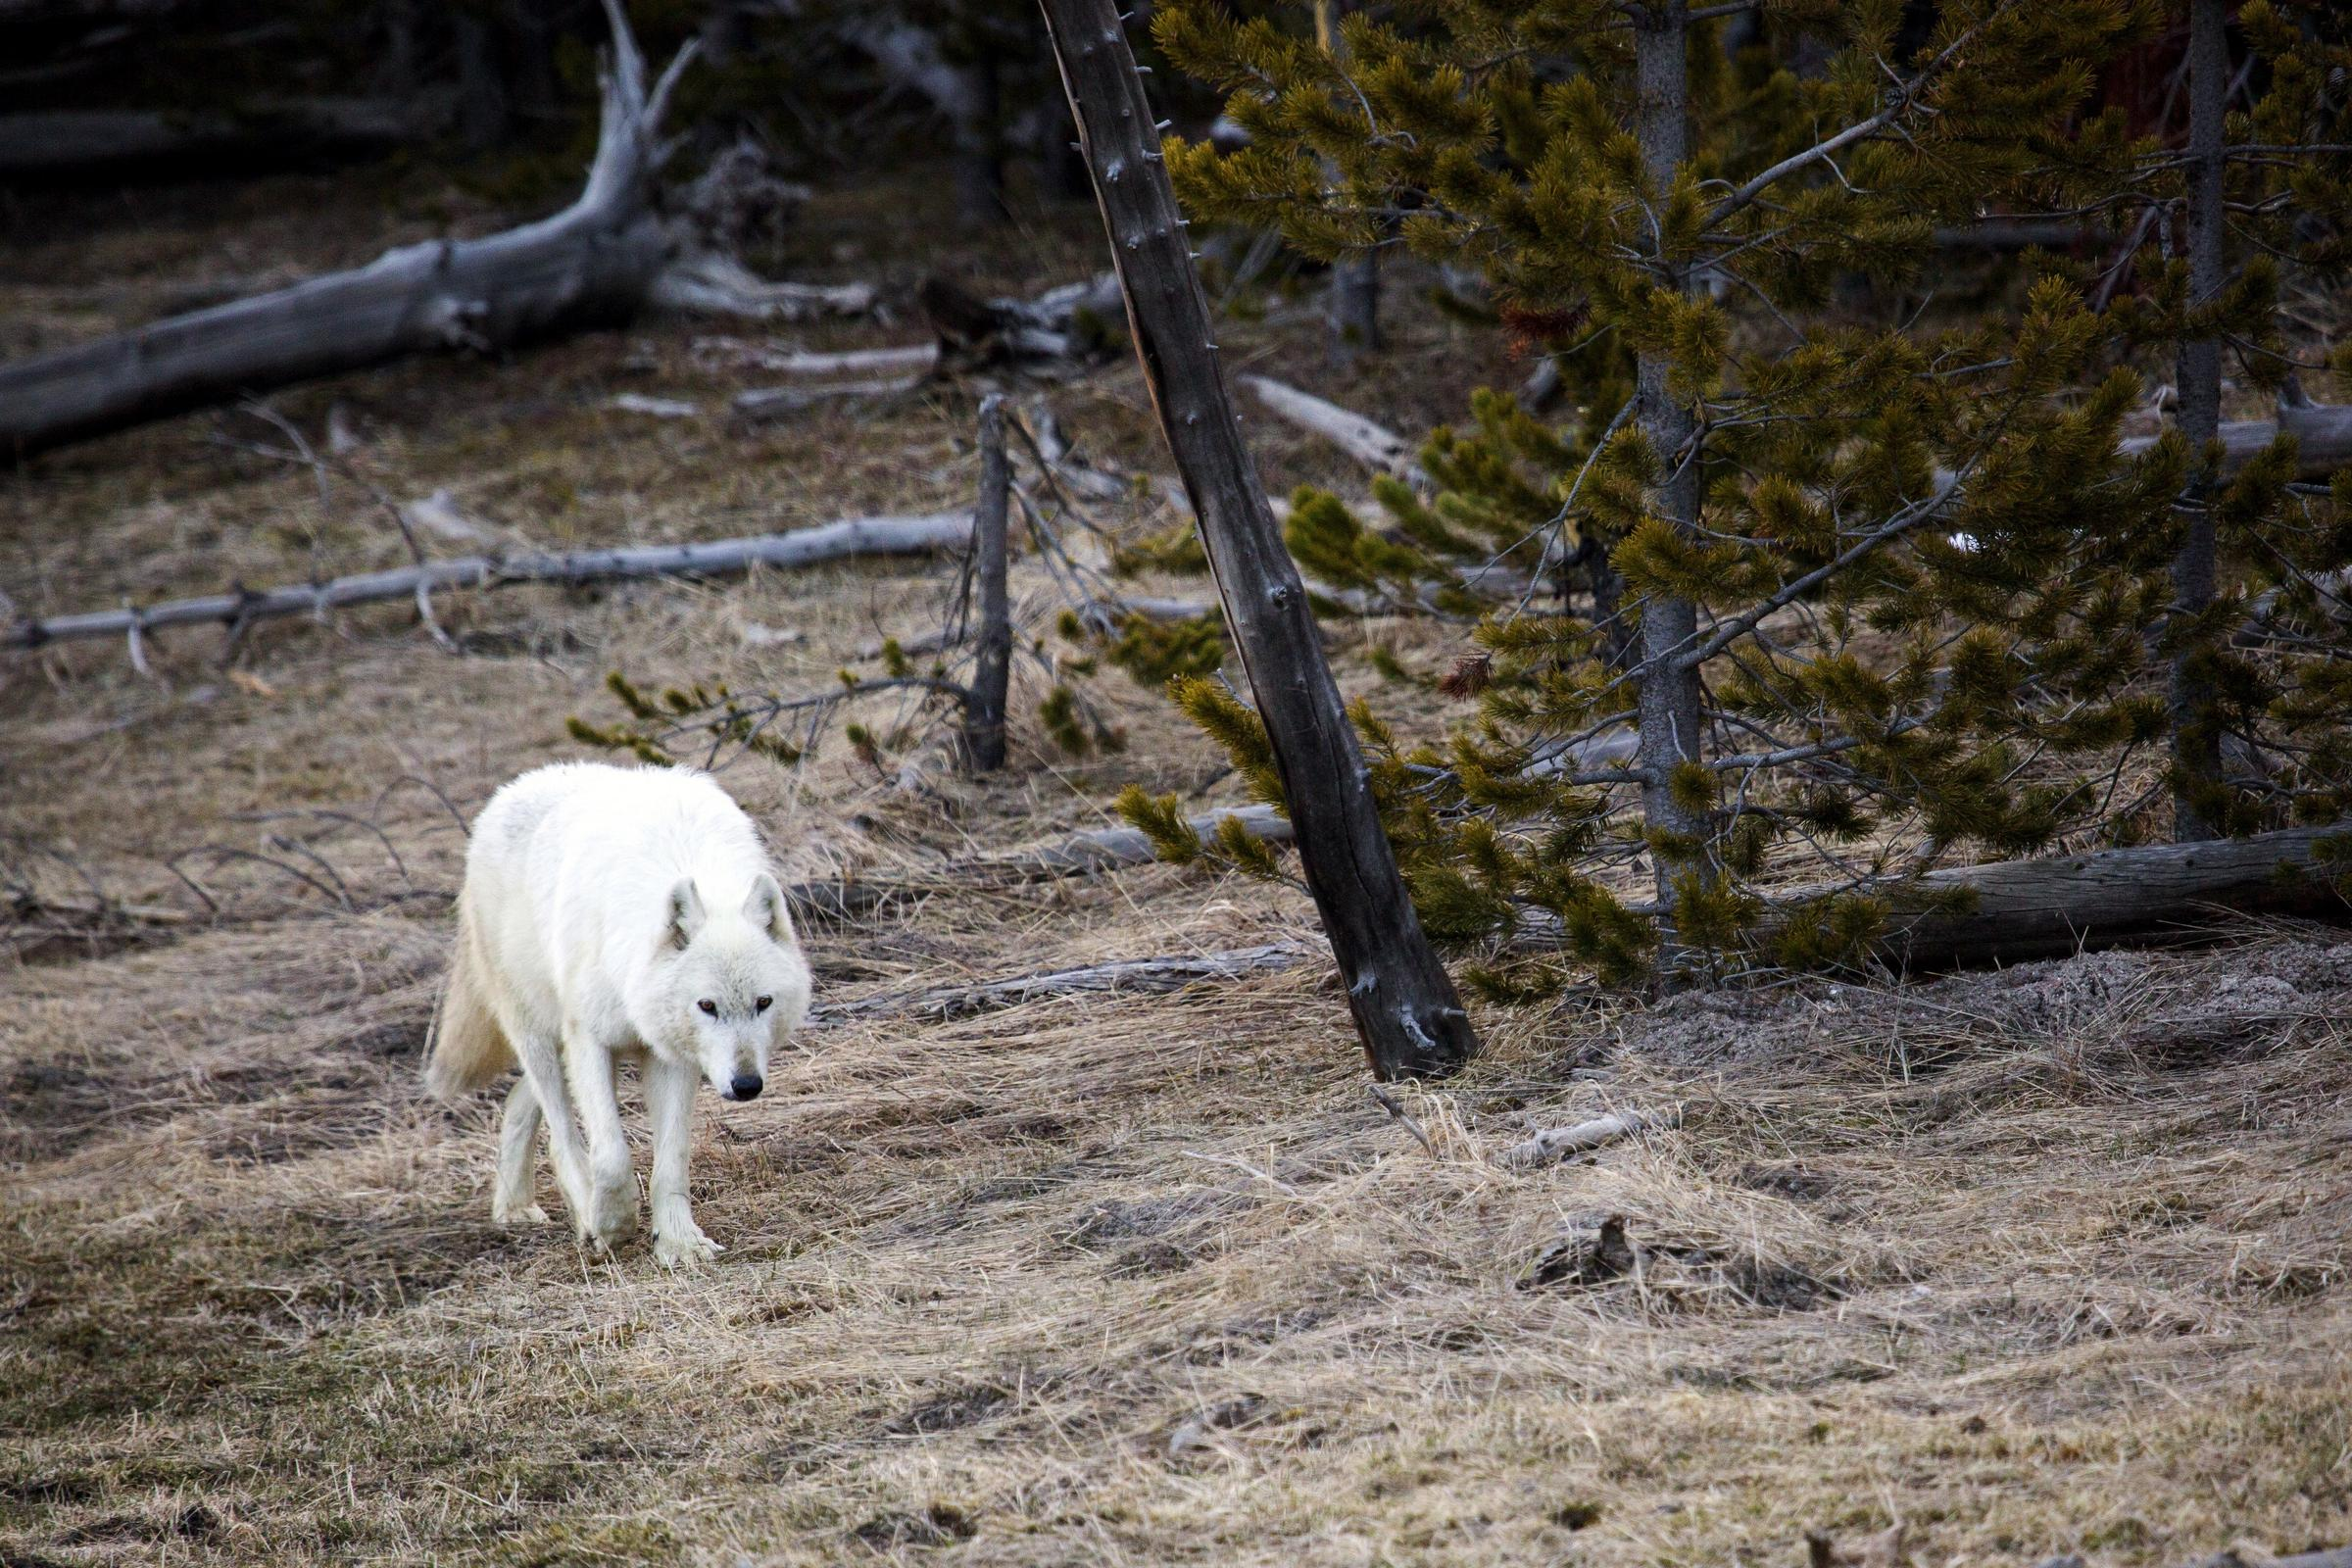 Famous white wolf was shot; Yellowstone offers $5000 reward